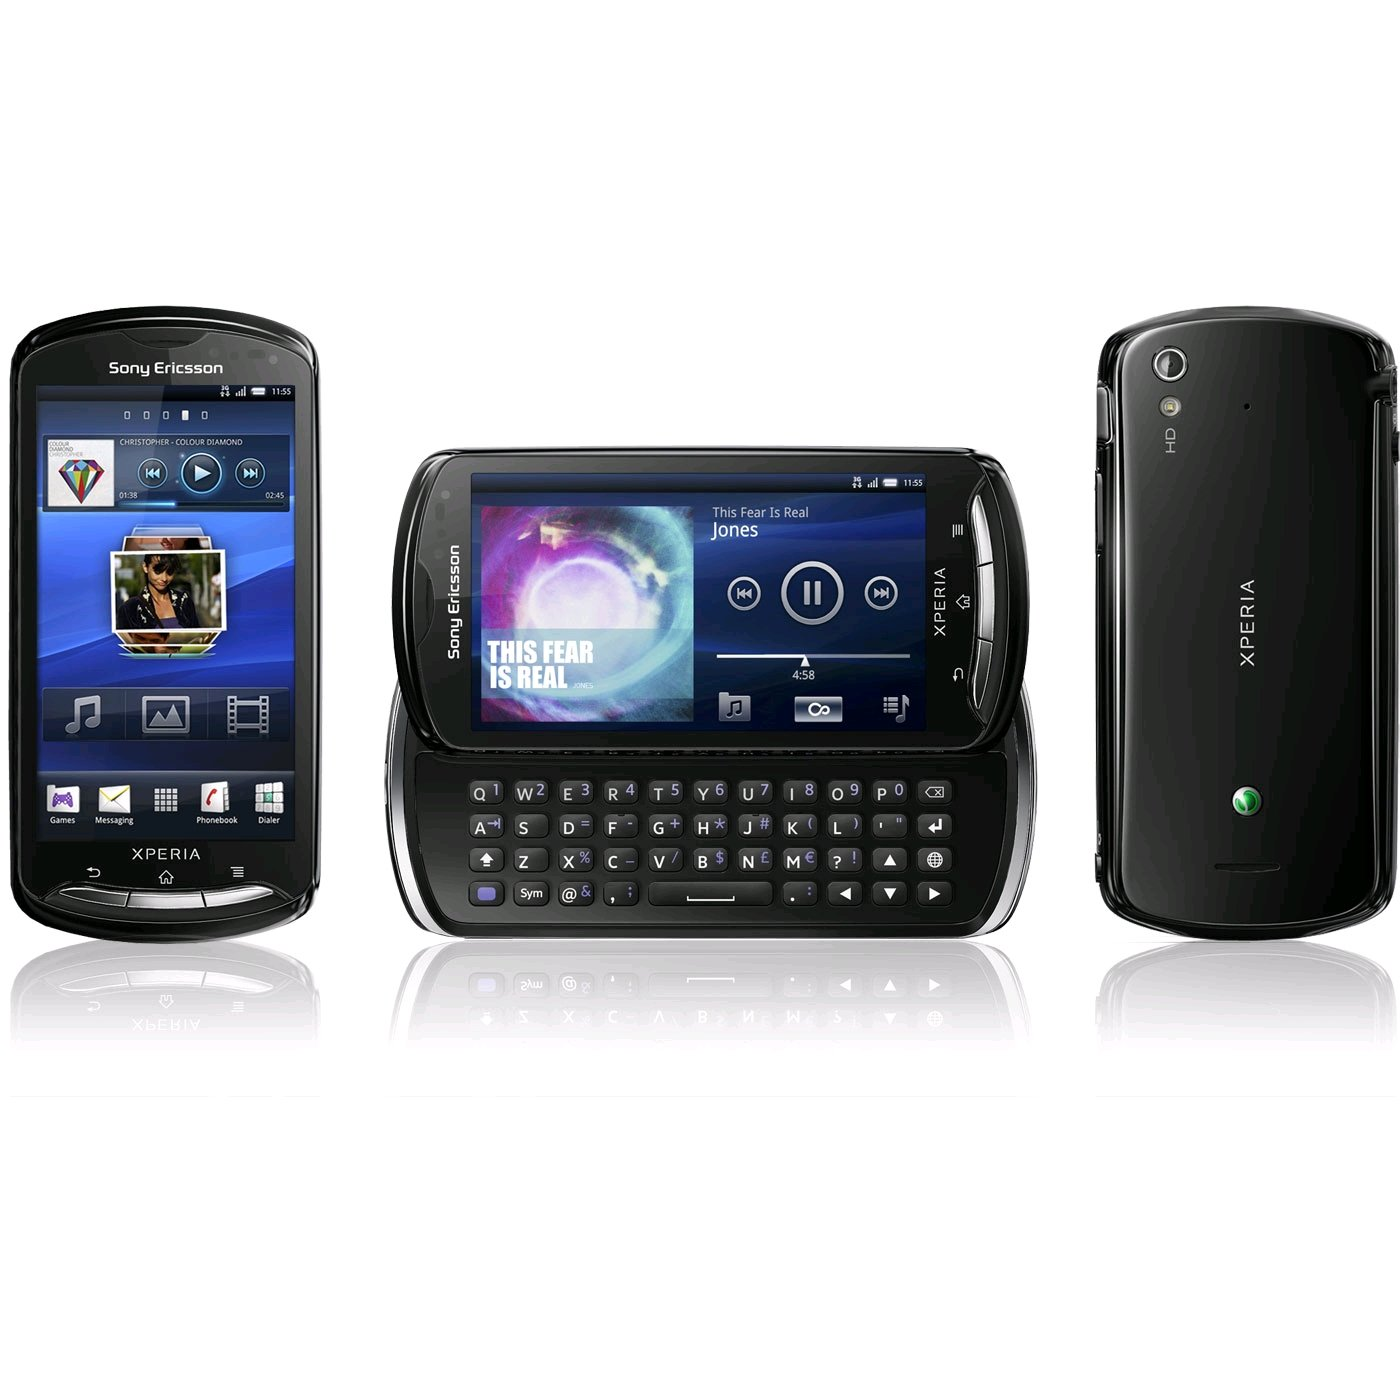 sony ericsson xperia pro specs review release date phonesdata. Black Bedroom Furniture Sets. Home Design Ideas